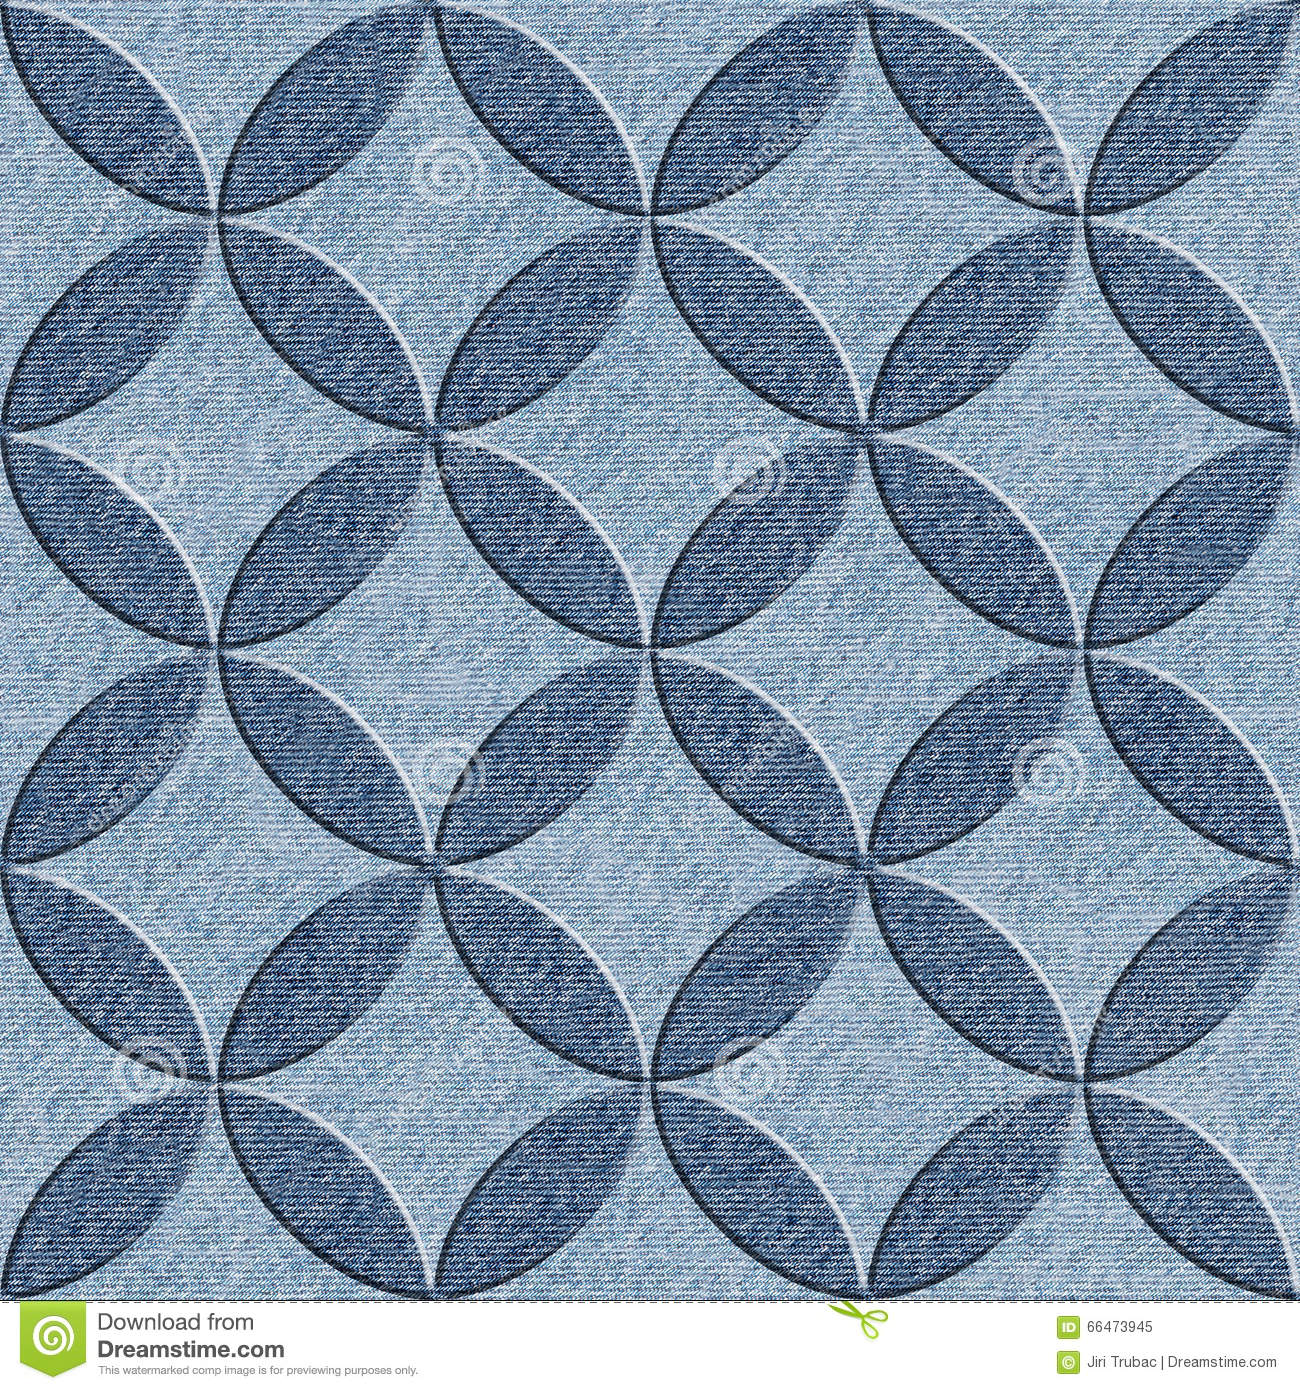 Abstract Background Blue Decor Decoration Design Interior Jeans Material Paneling Pattern Seamless Texture